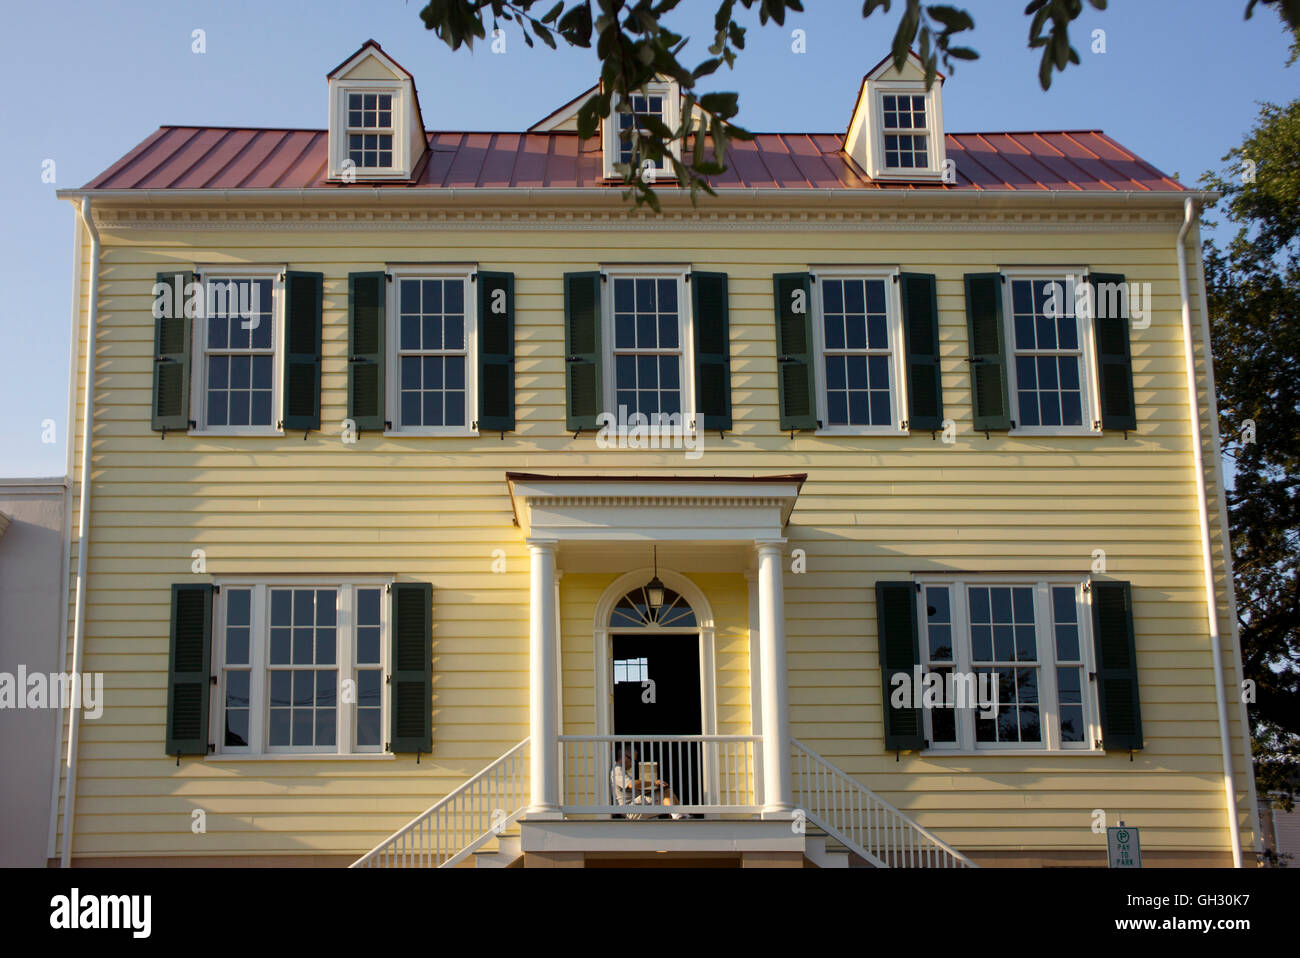 Typical Colonial Style Home In Savannah Georgia Stock Photo